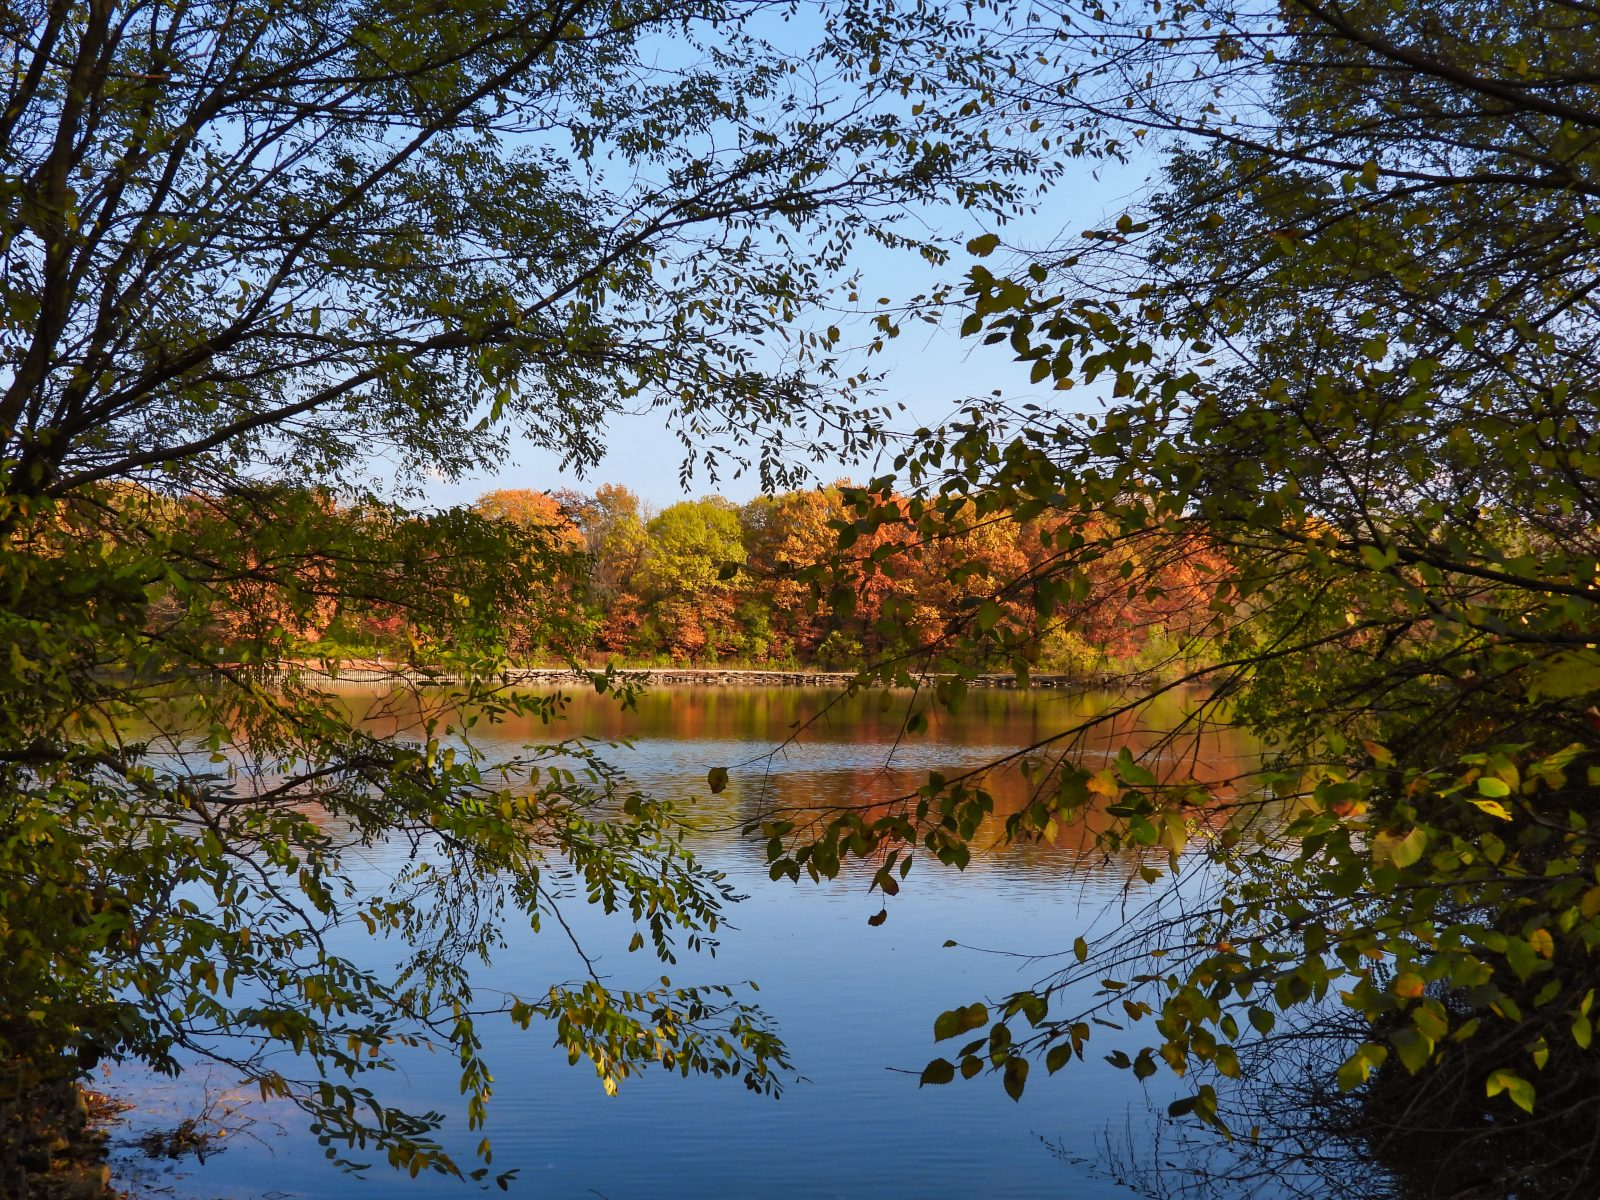 Framed Fall Landscape View of Various Autumn Colored Trees Across a Lake with Reflection of Yellow, Orange, Red, Brown and Green Tree Leaves in Water Bright Blue Sky Calm Tranquil Scene